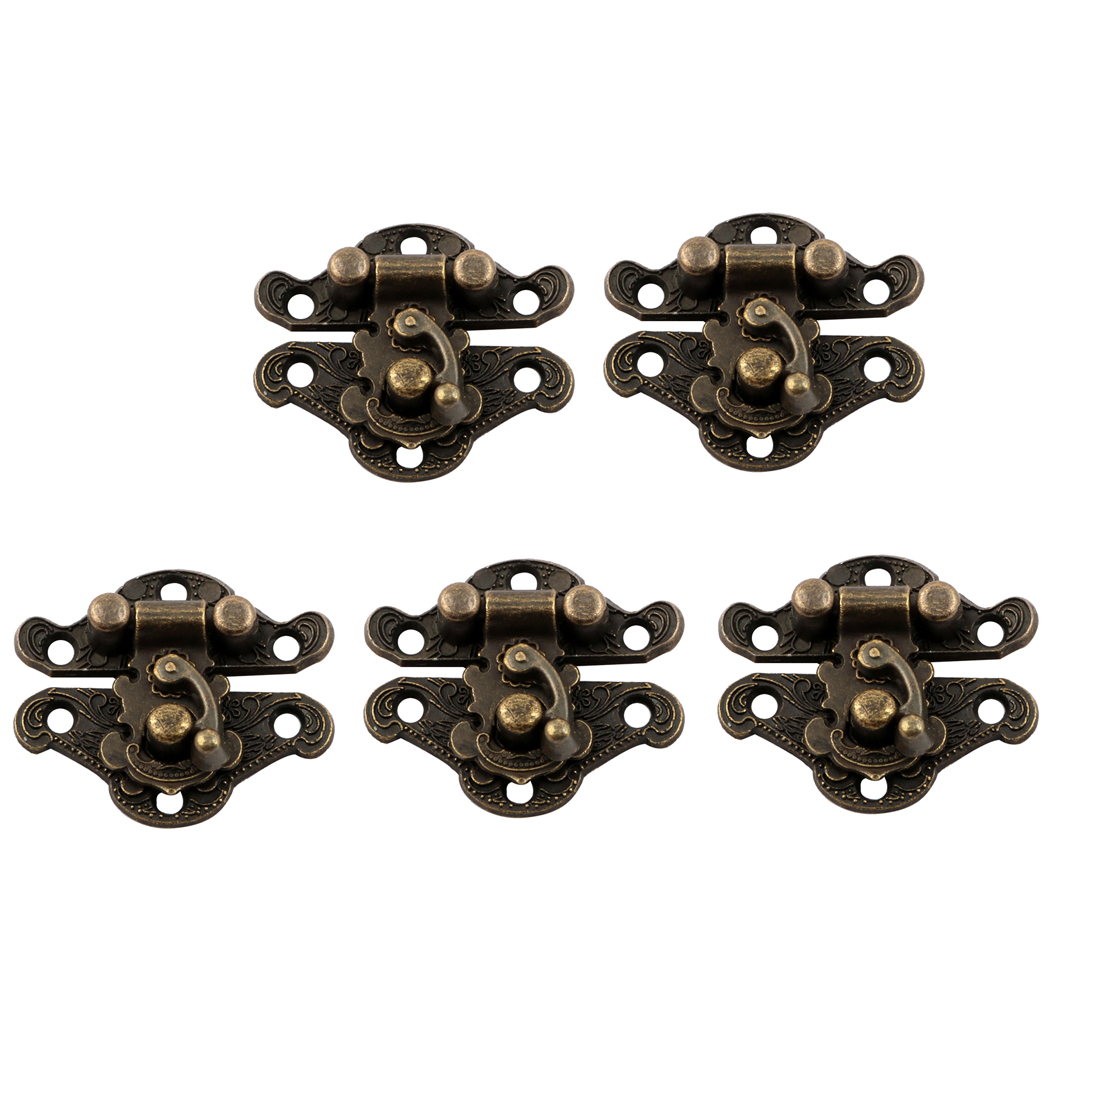 Vintage Style Box Latch Case Hasp Pad Chest Lock Hook Hinge Bronze Tone 5pcs